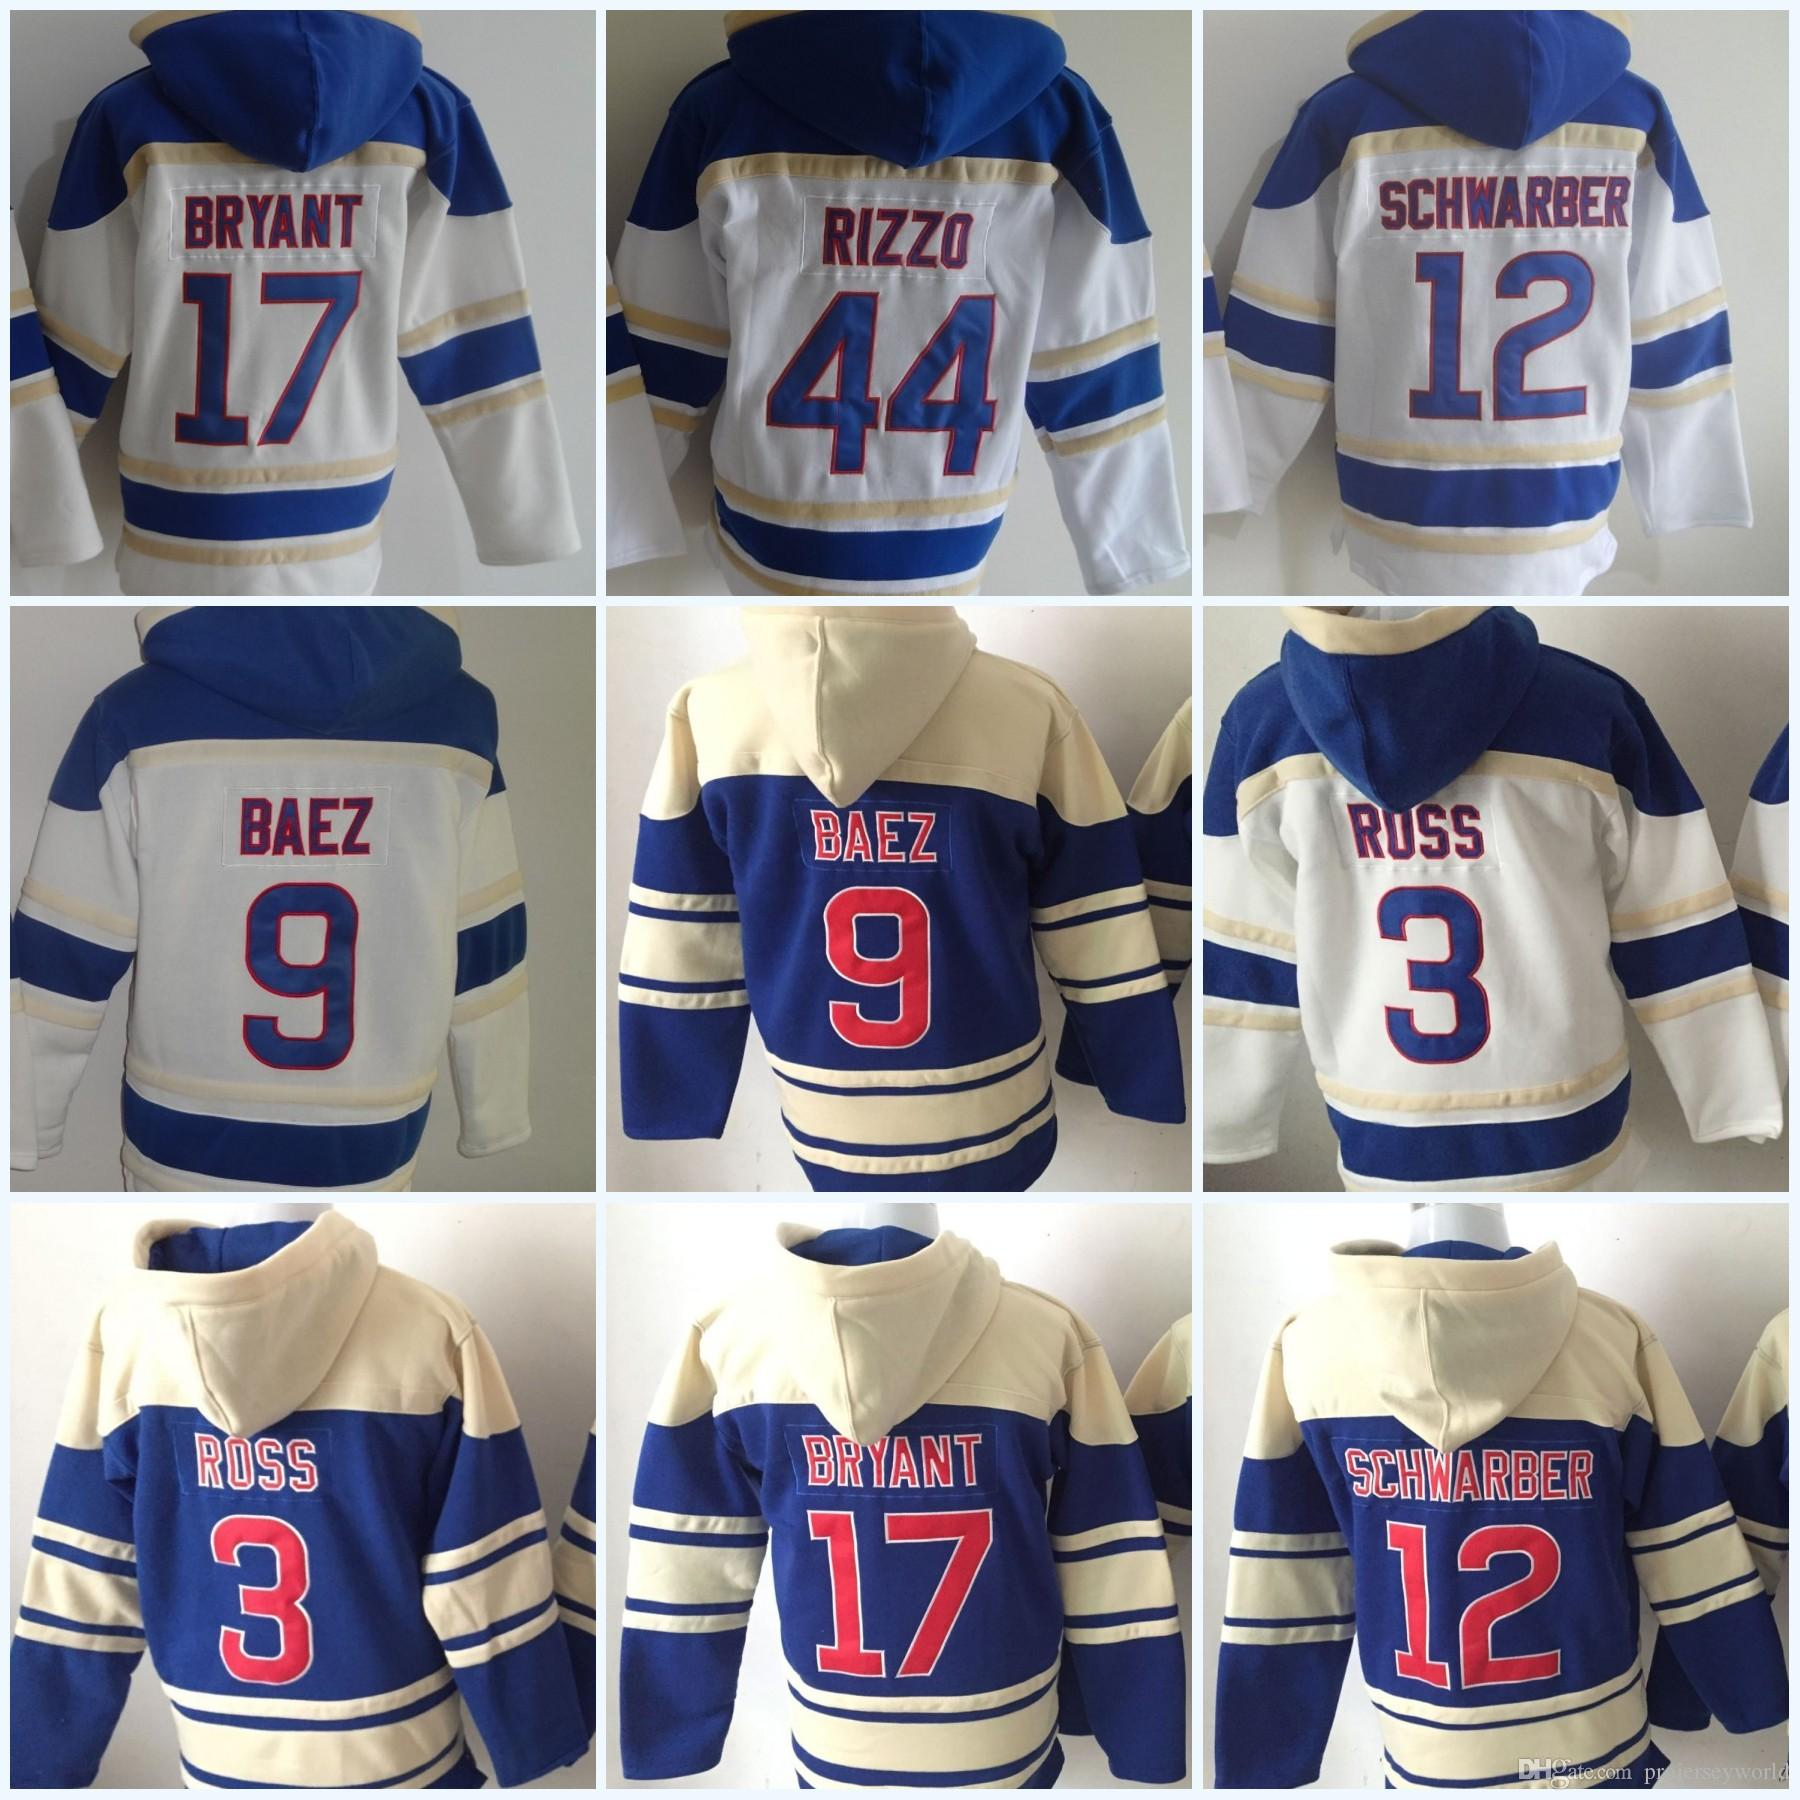 4606d4cf3 2019 Mens Newest 17 KrisBryant 9 Javier Baez 44 AnthonyRizzo 3 David Ross 12  Kyle Schwarber Hooded Sweater Baseball Jersey All Stitched From  Projerseyworld